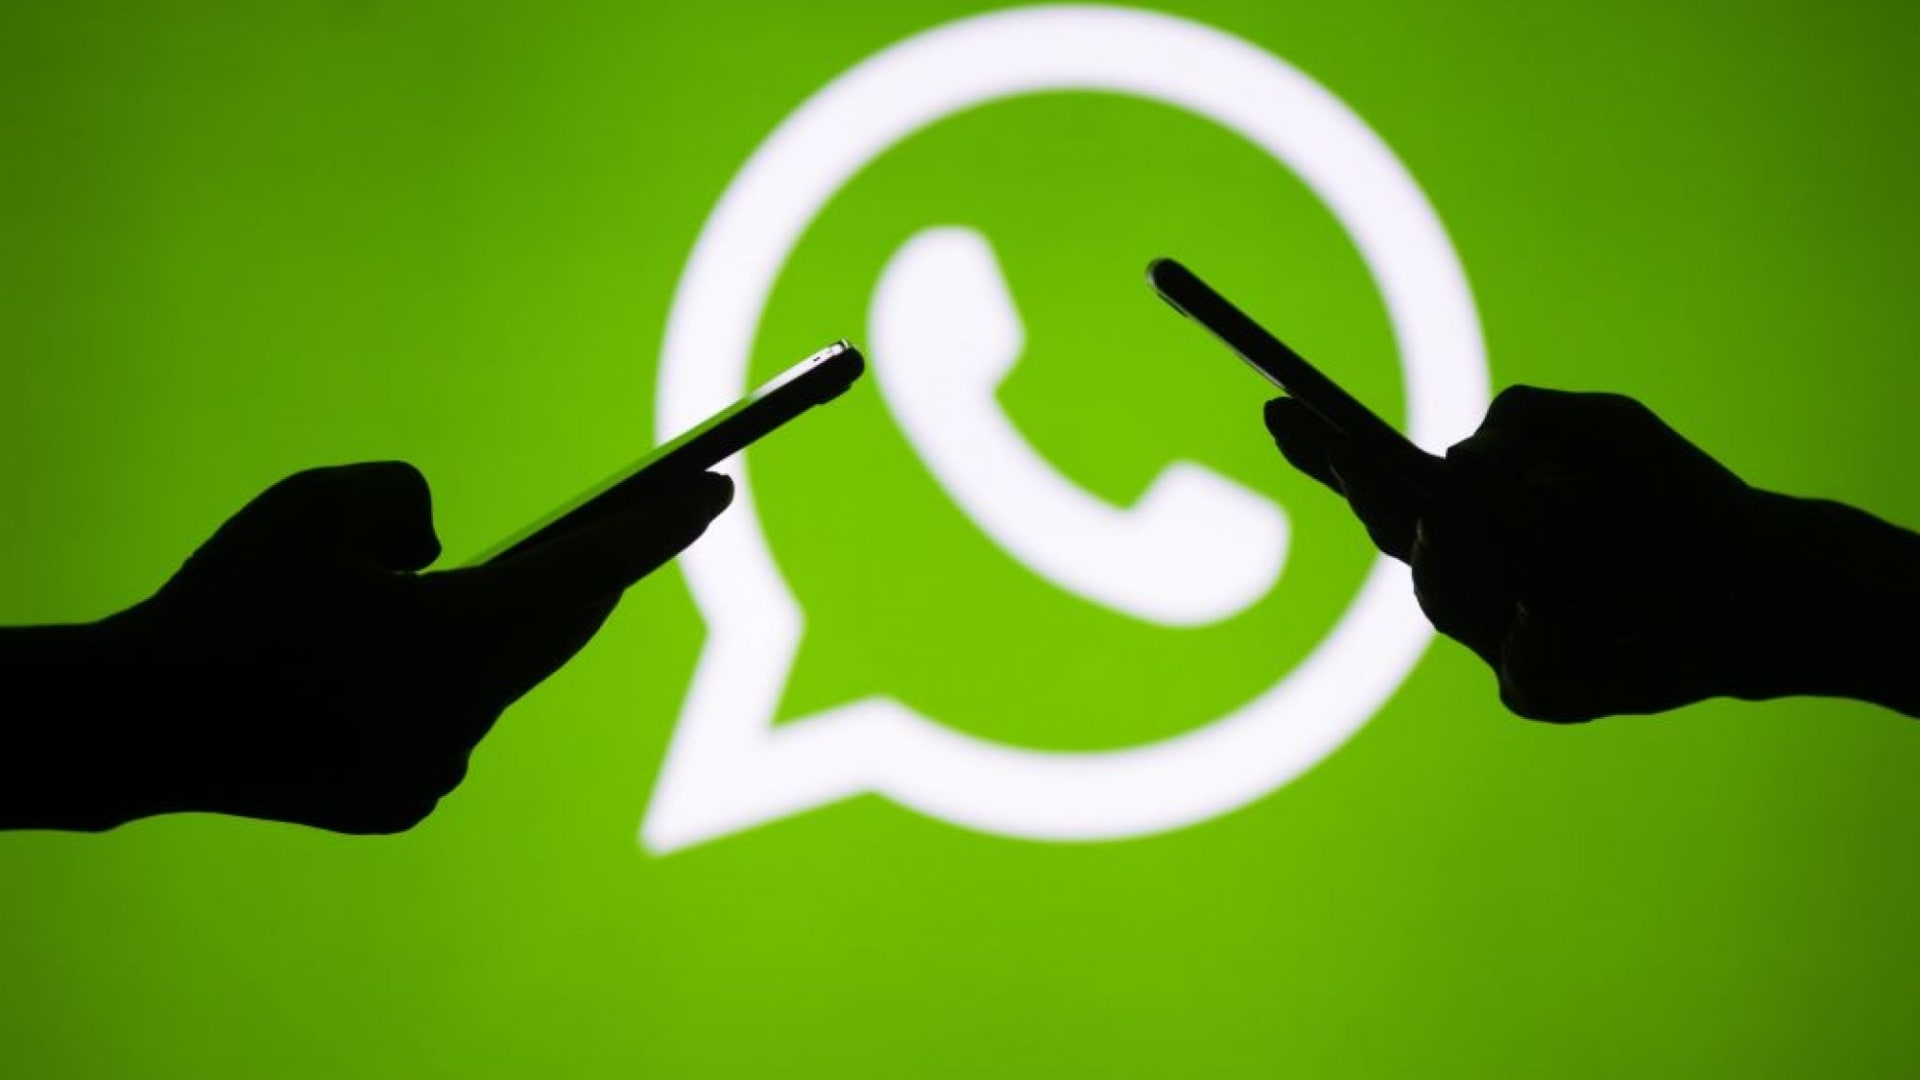 No, Facebook Isn't Reading Your Private WhatsApp Messages. The Problem Is Much Worse